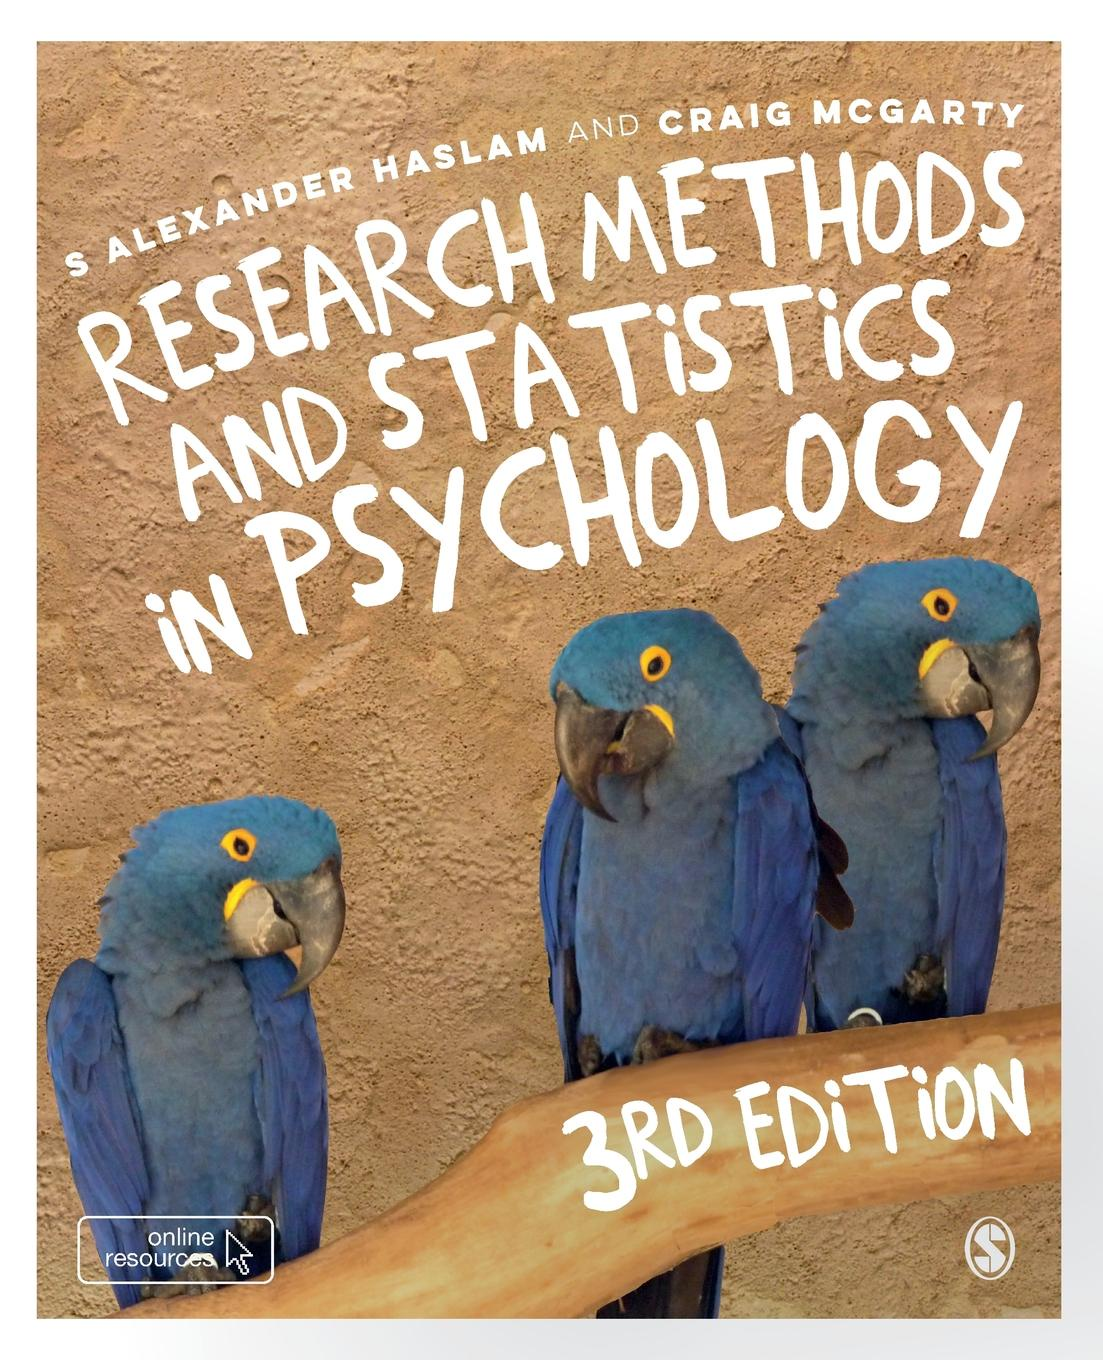 Alexander S. Haslam Research Methods and Statistics in Psychology недорго, оригинальная цена